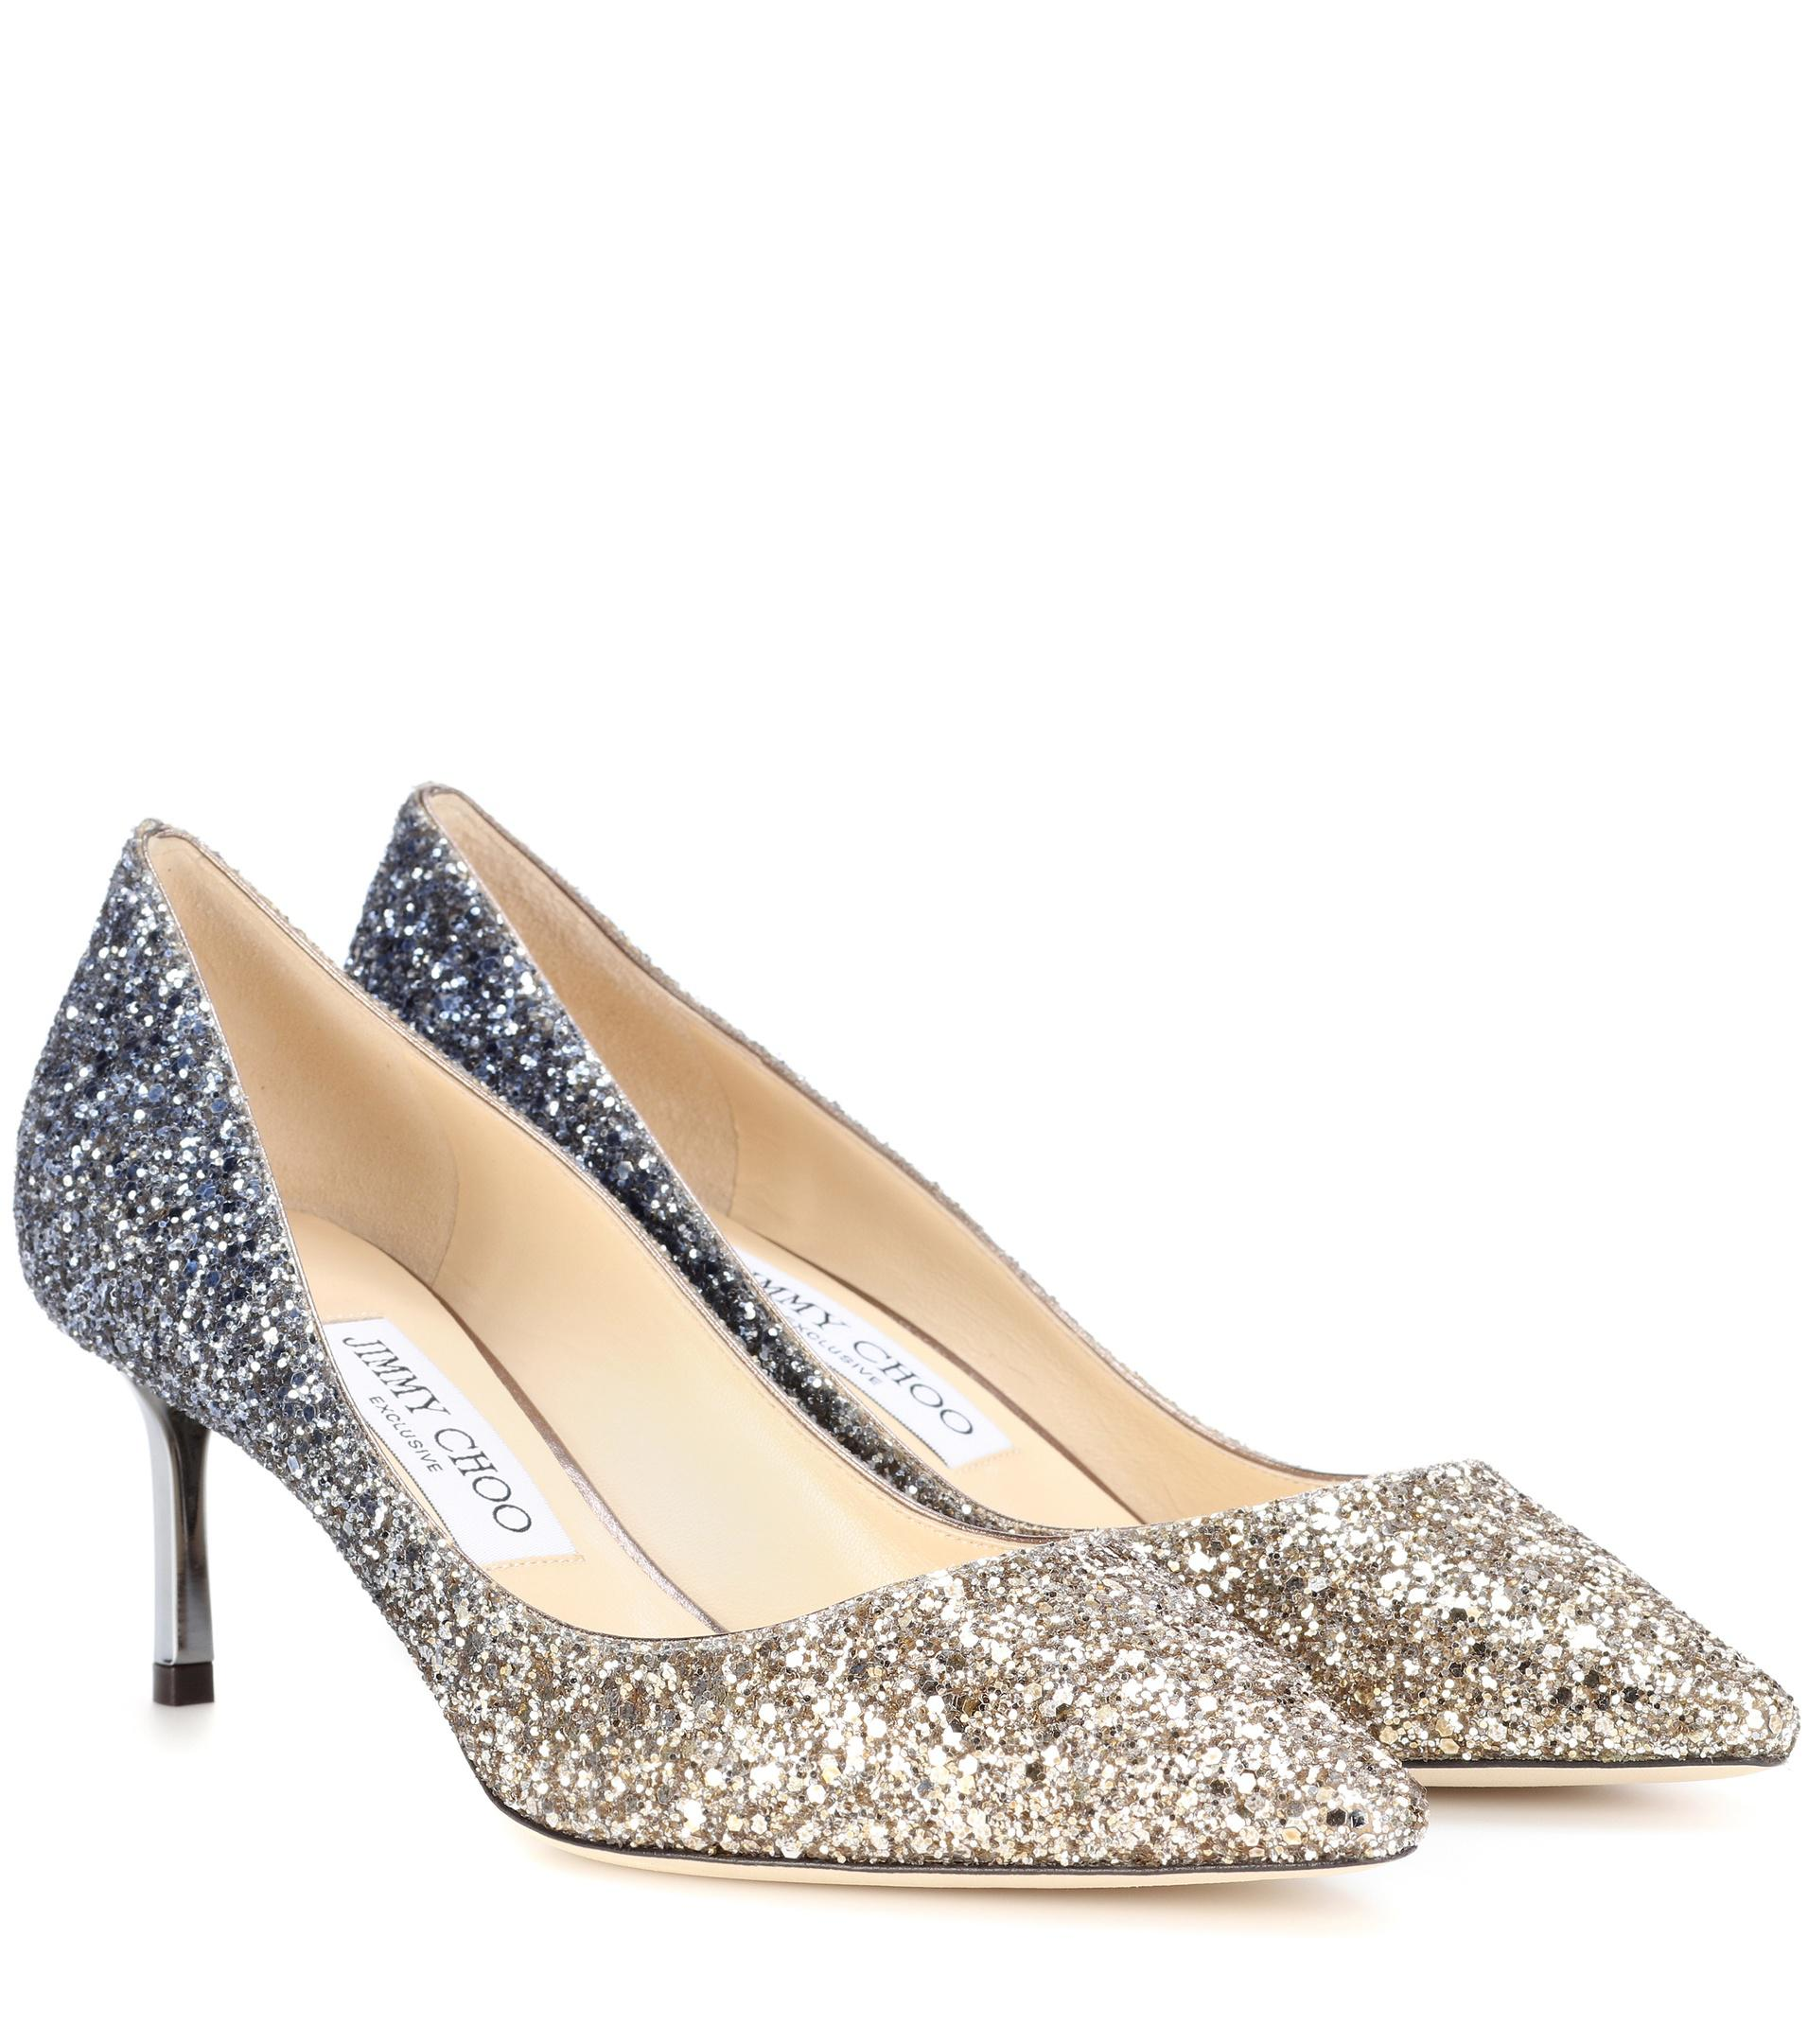 Exclusive to mytheresa.com - Romy 100 glitter pumps Jimmy Choo London Get Authentic Sale Fashion Style For Sale The Cheapest Free Shipping Great Deals frqwh3t5